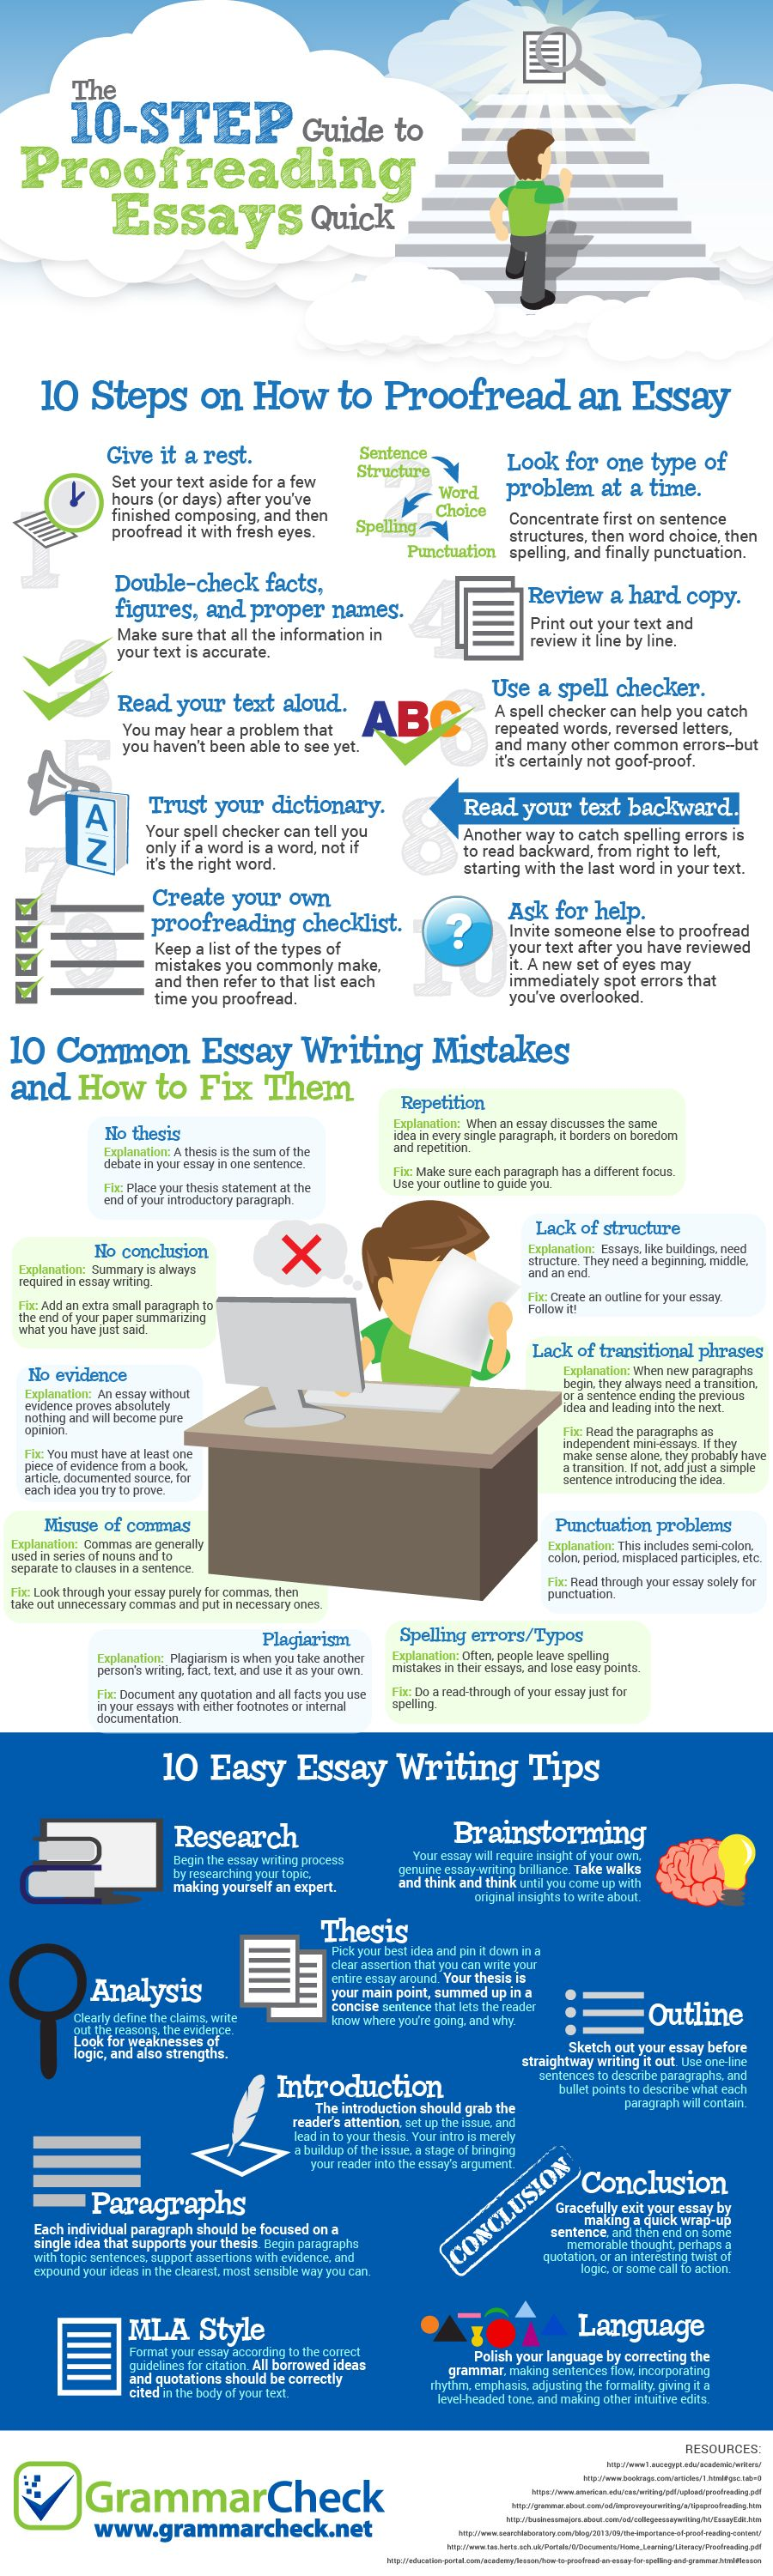 10 steps to writing an essay online writing paper